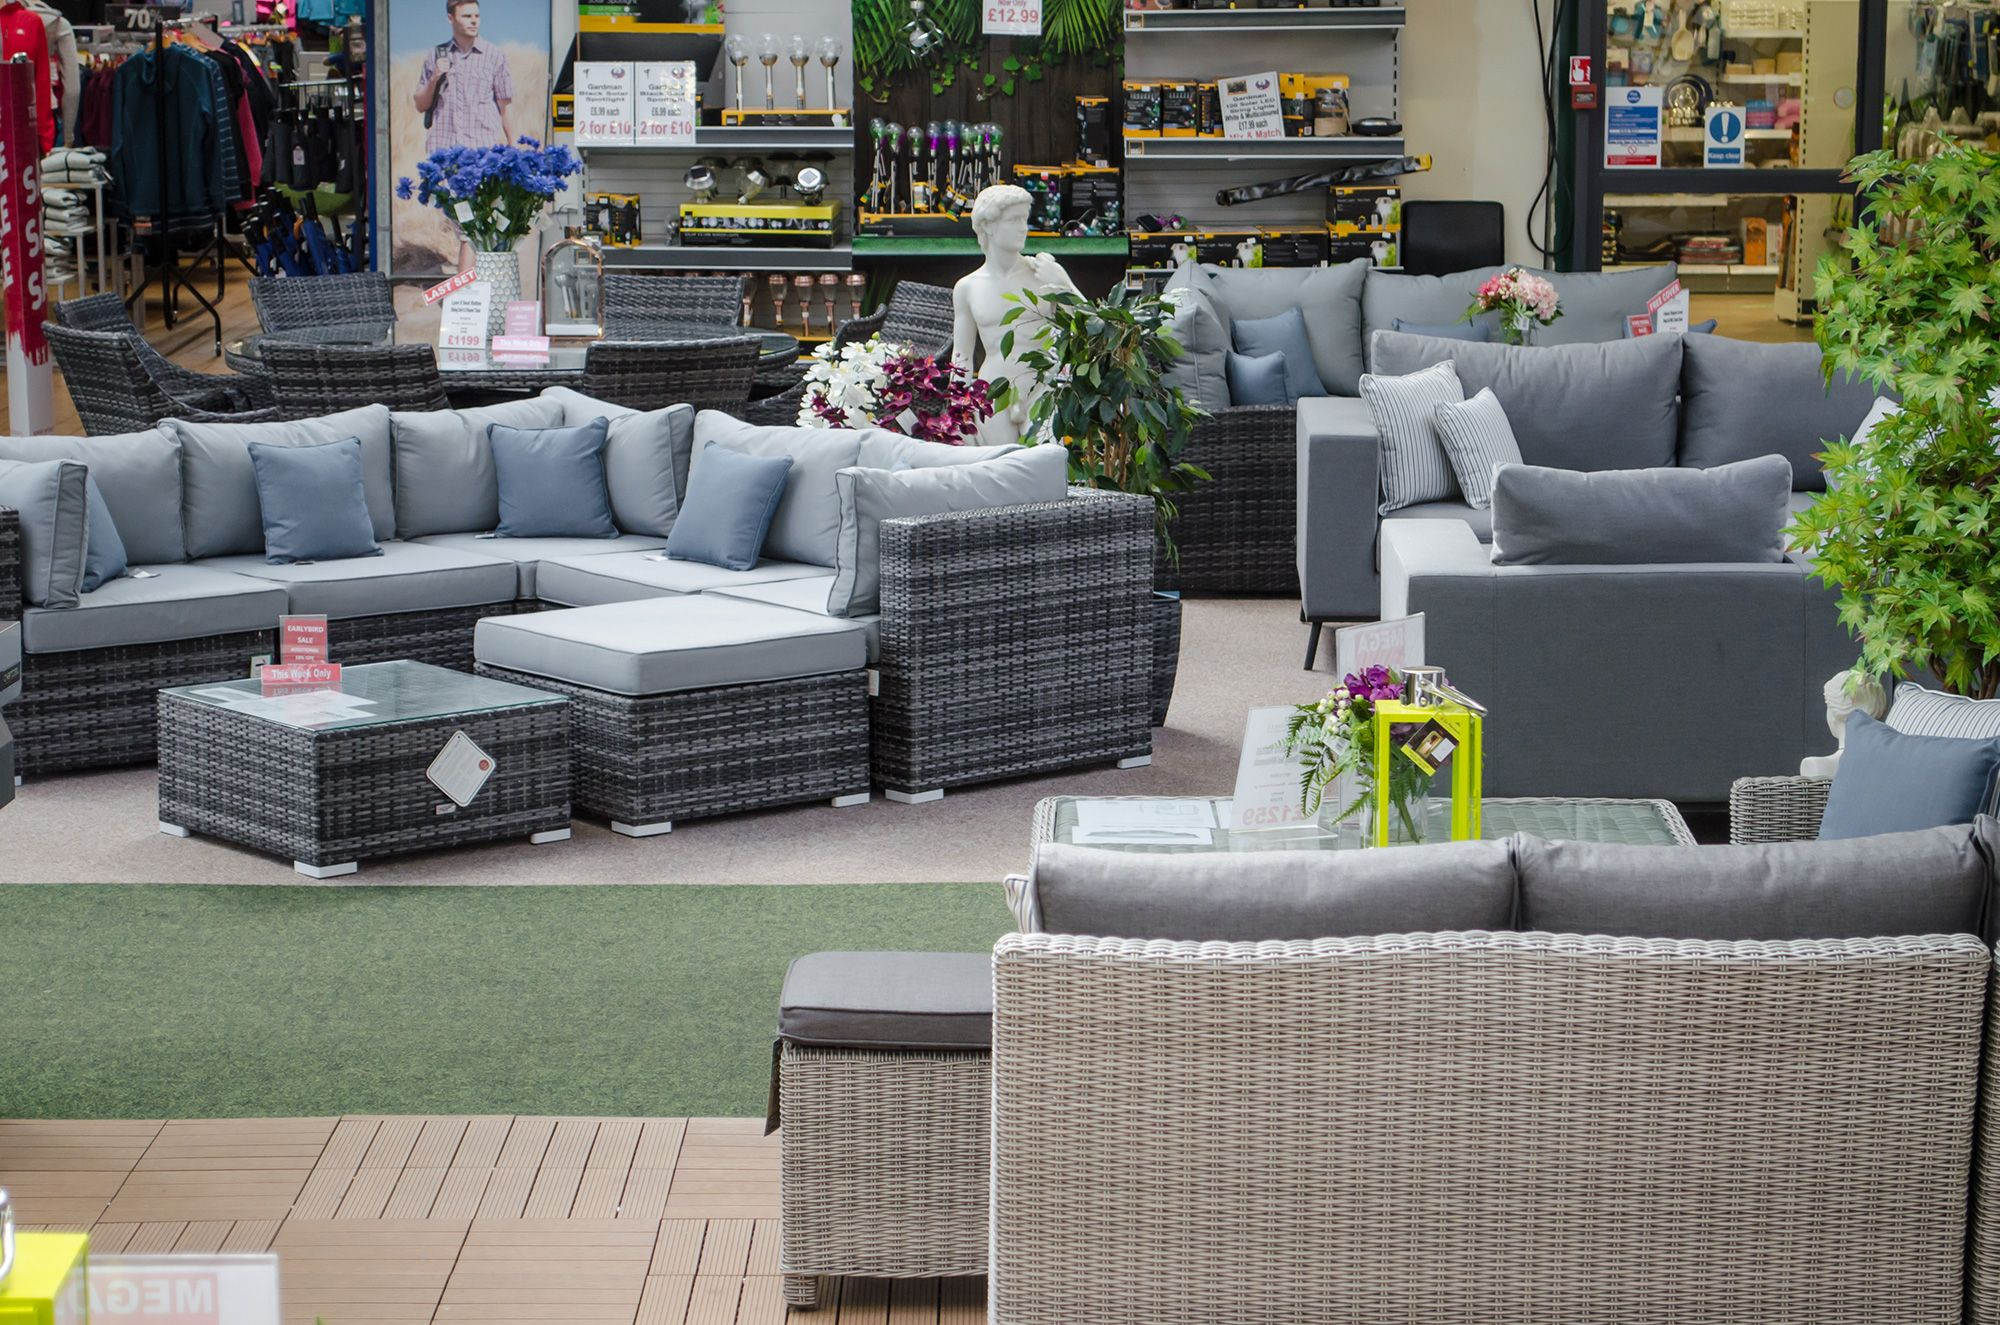 Rattan Garden Furniture Enfield - Visit Our Showroom